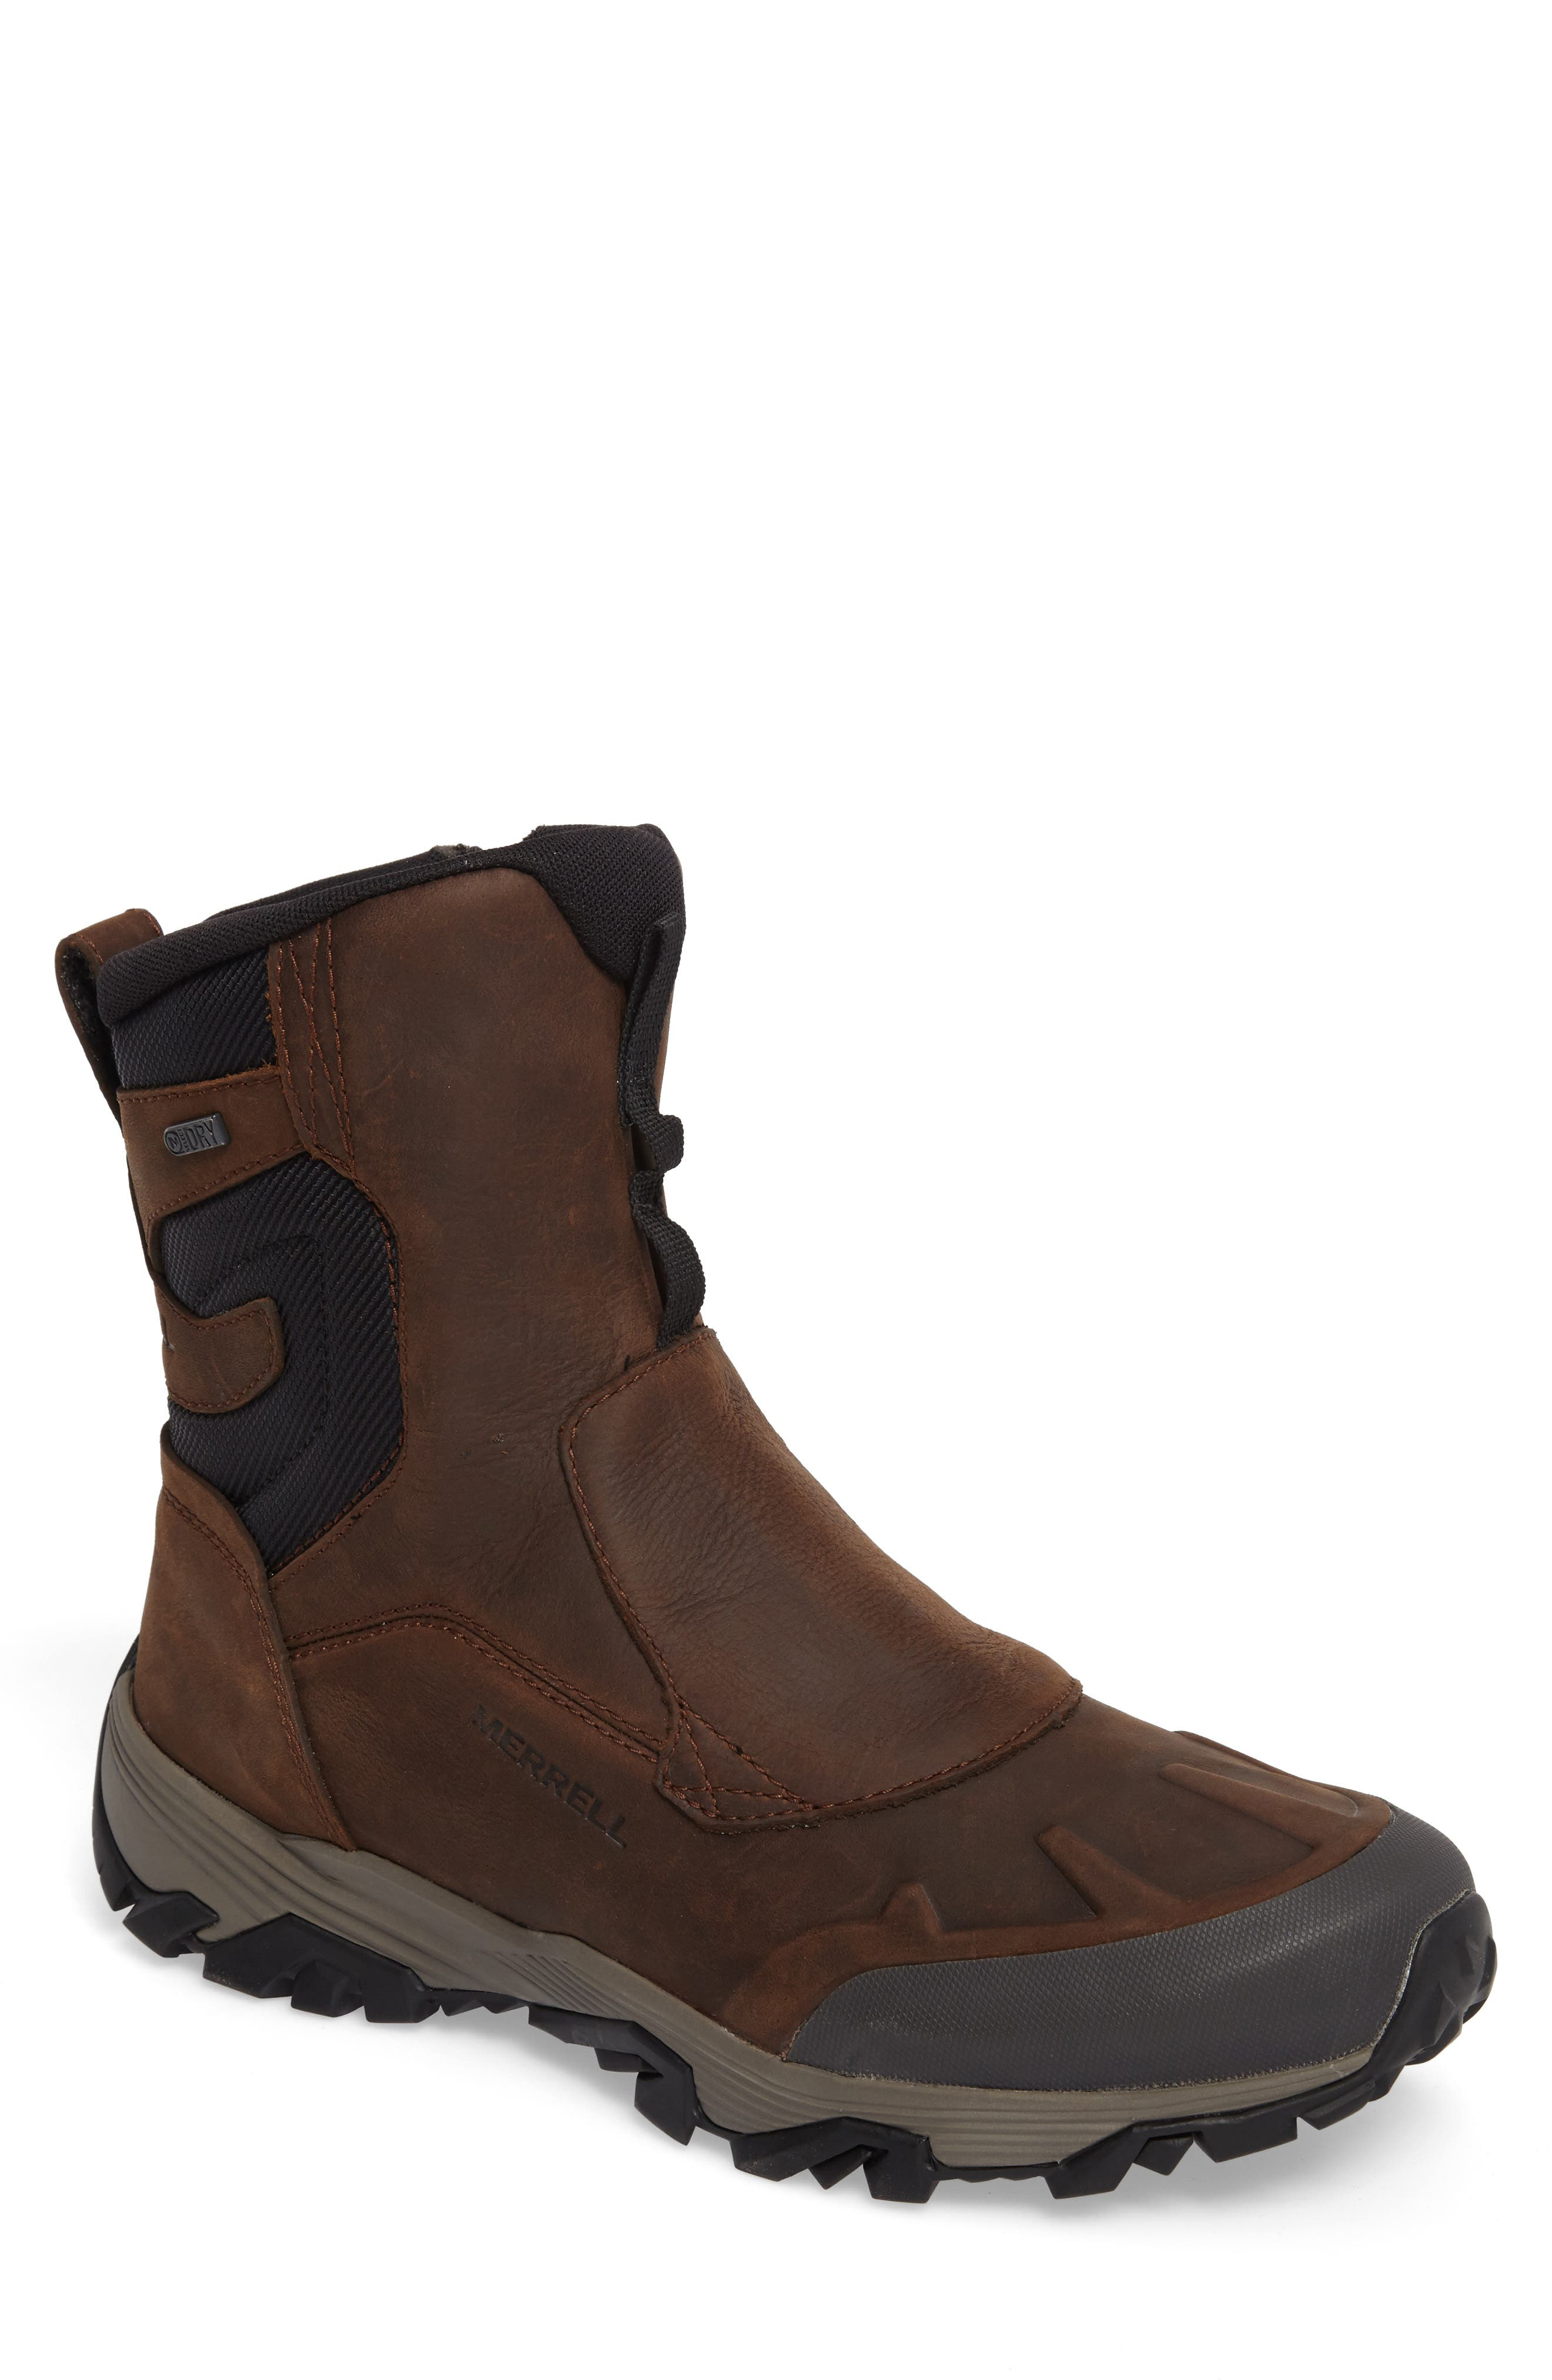 Cold Pack Ice Boot,                         Main,                         color, CLAY NUBUCK LEATHER